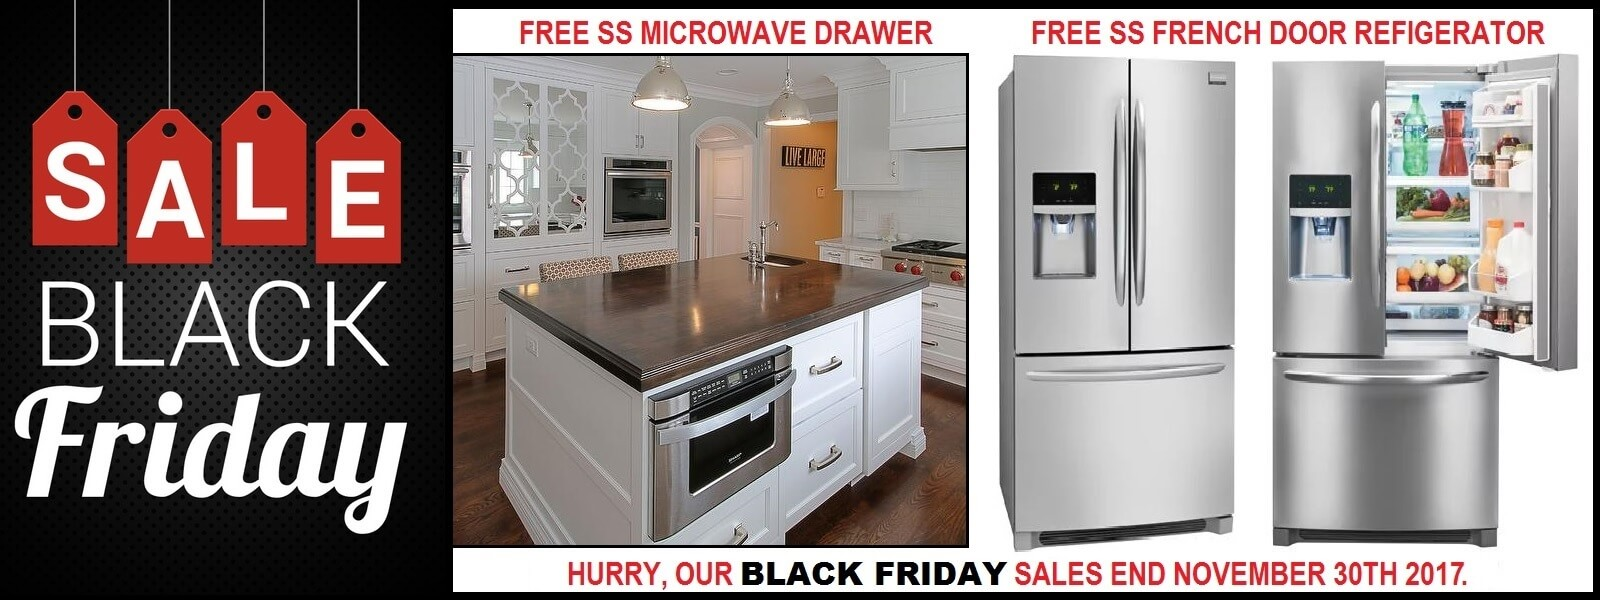 Black Friday Super Sale Free SS French Door Refrigerator